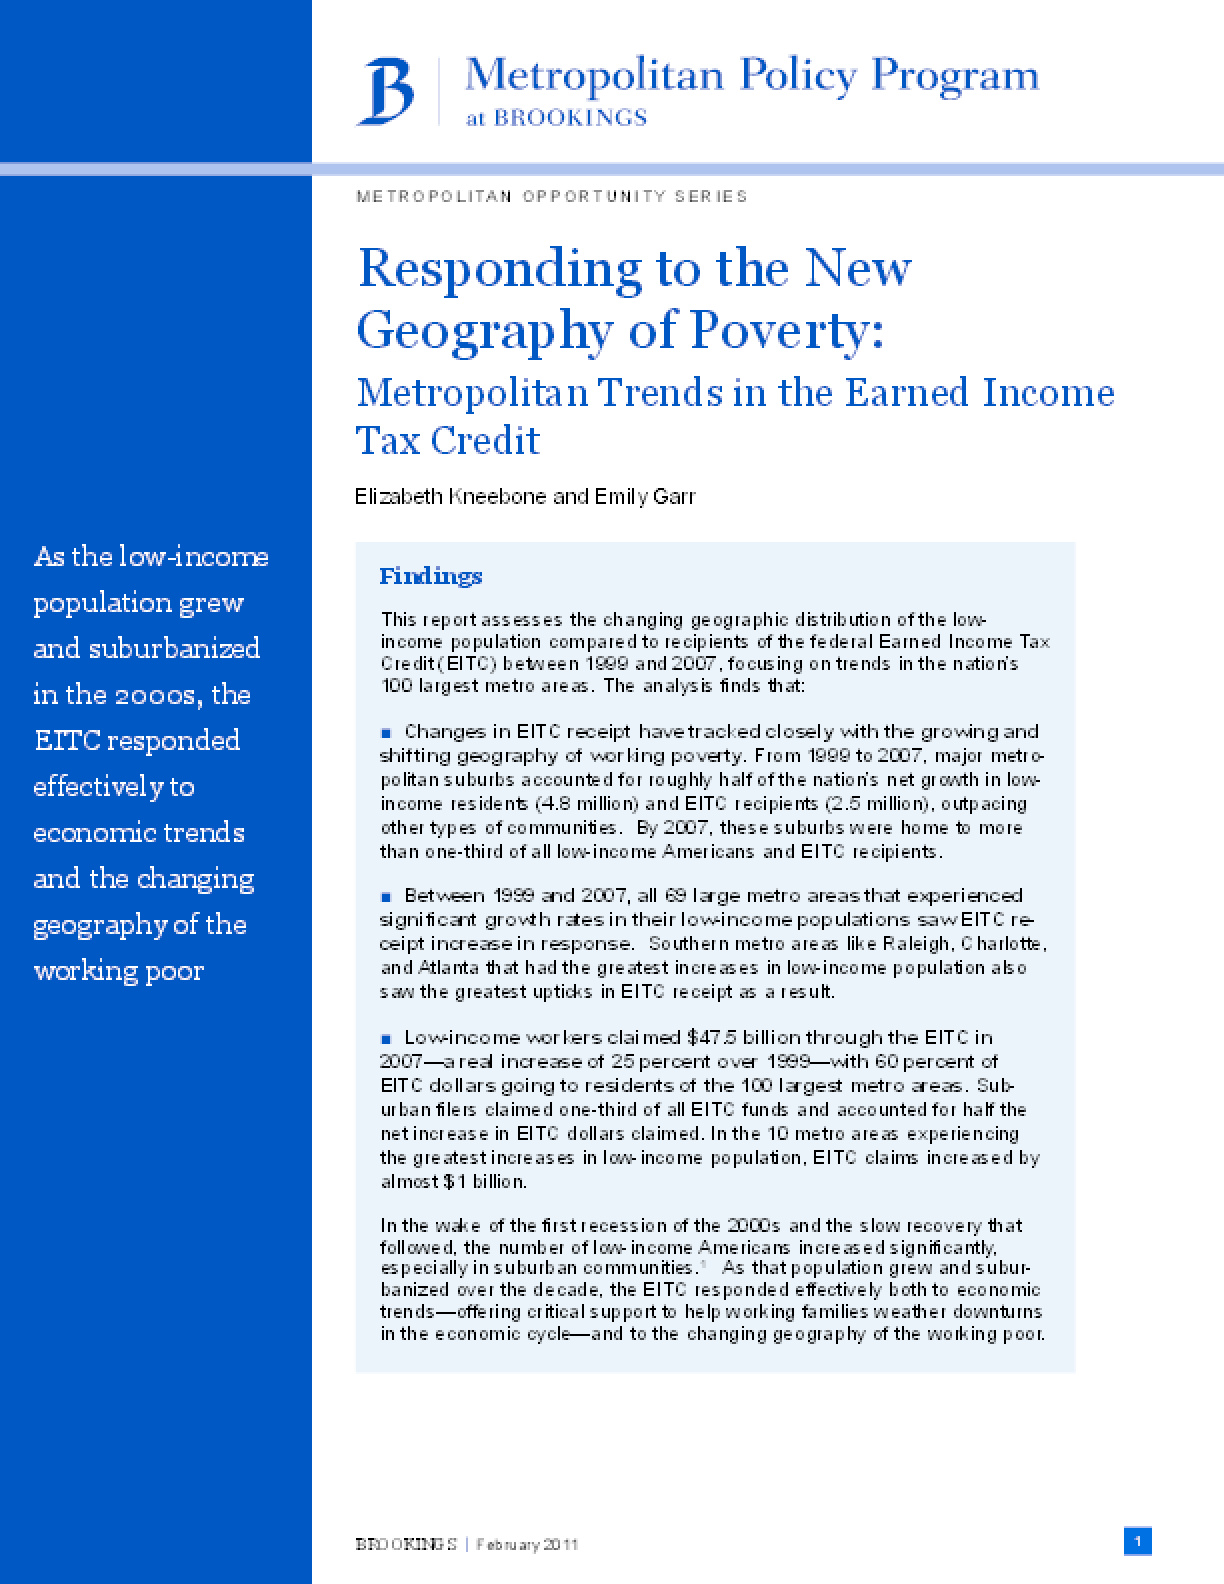 Responding to the New Geography of Poverty: Metropolitan Trends in the Earned Income Tax Credit